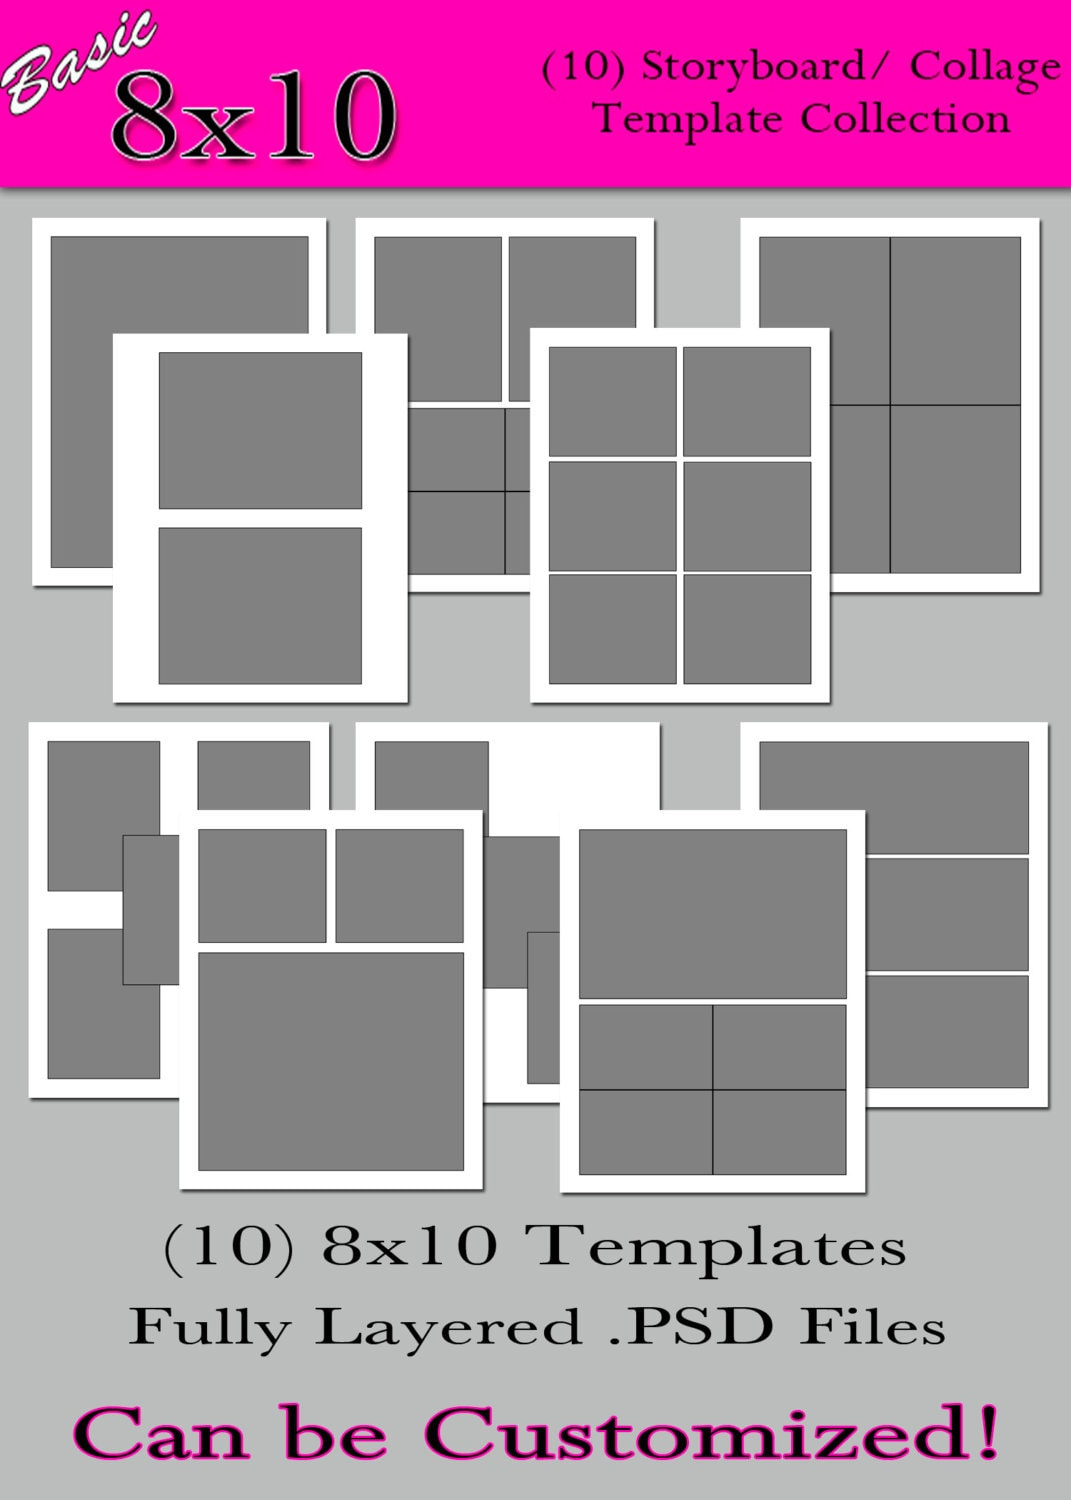 basic 8x10 collection 10 custom photo storyboard collage. Black Bedroom Furniture Sets. Home Design Ideas